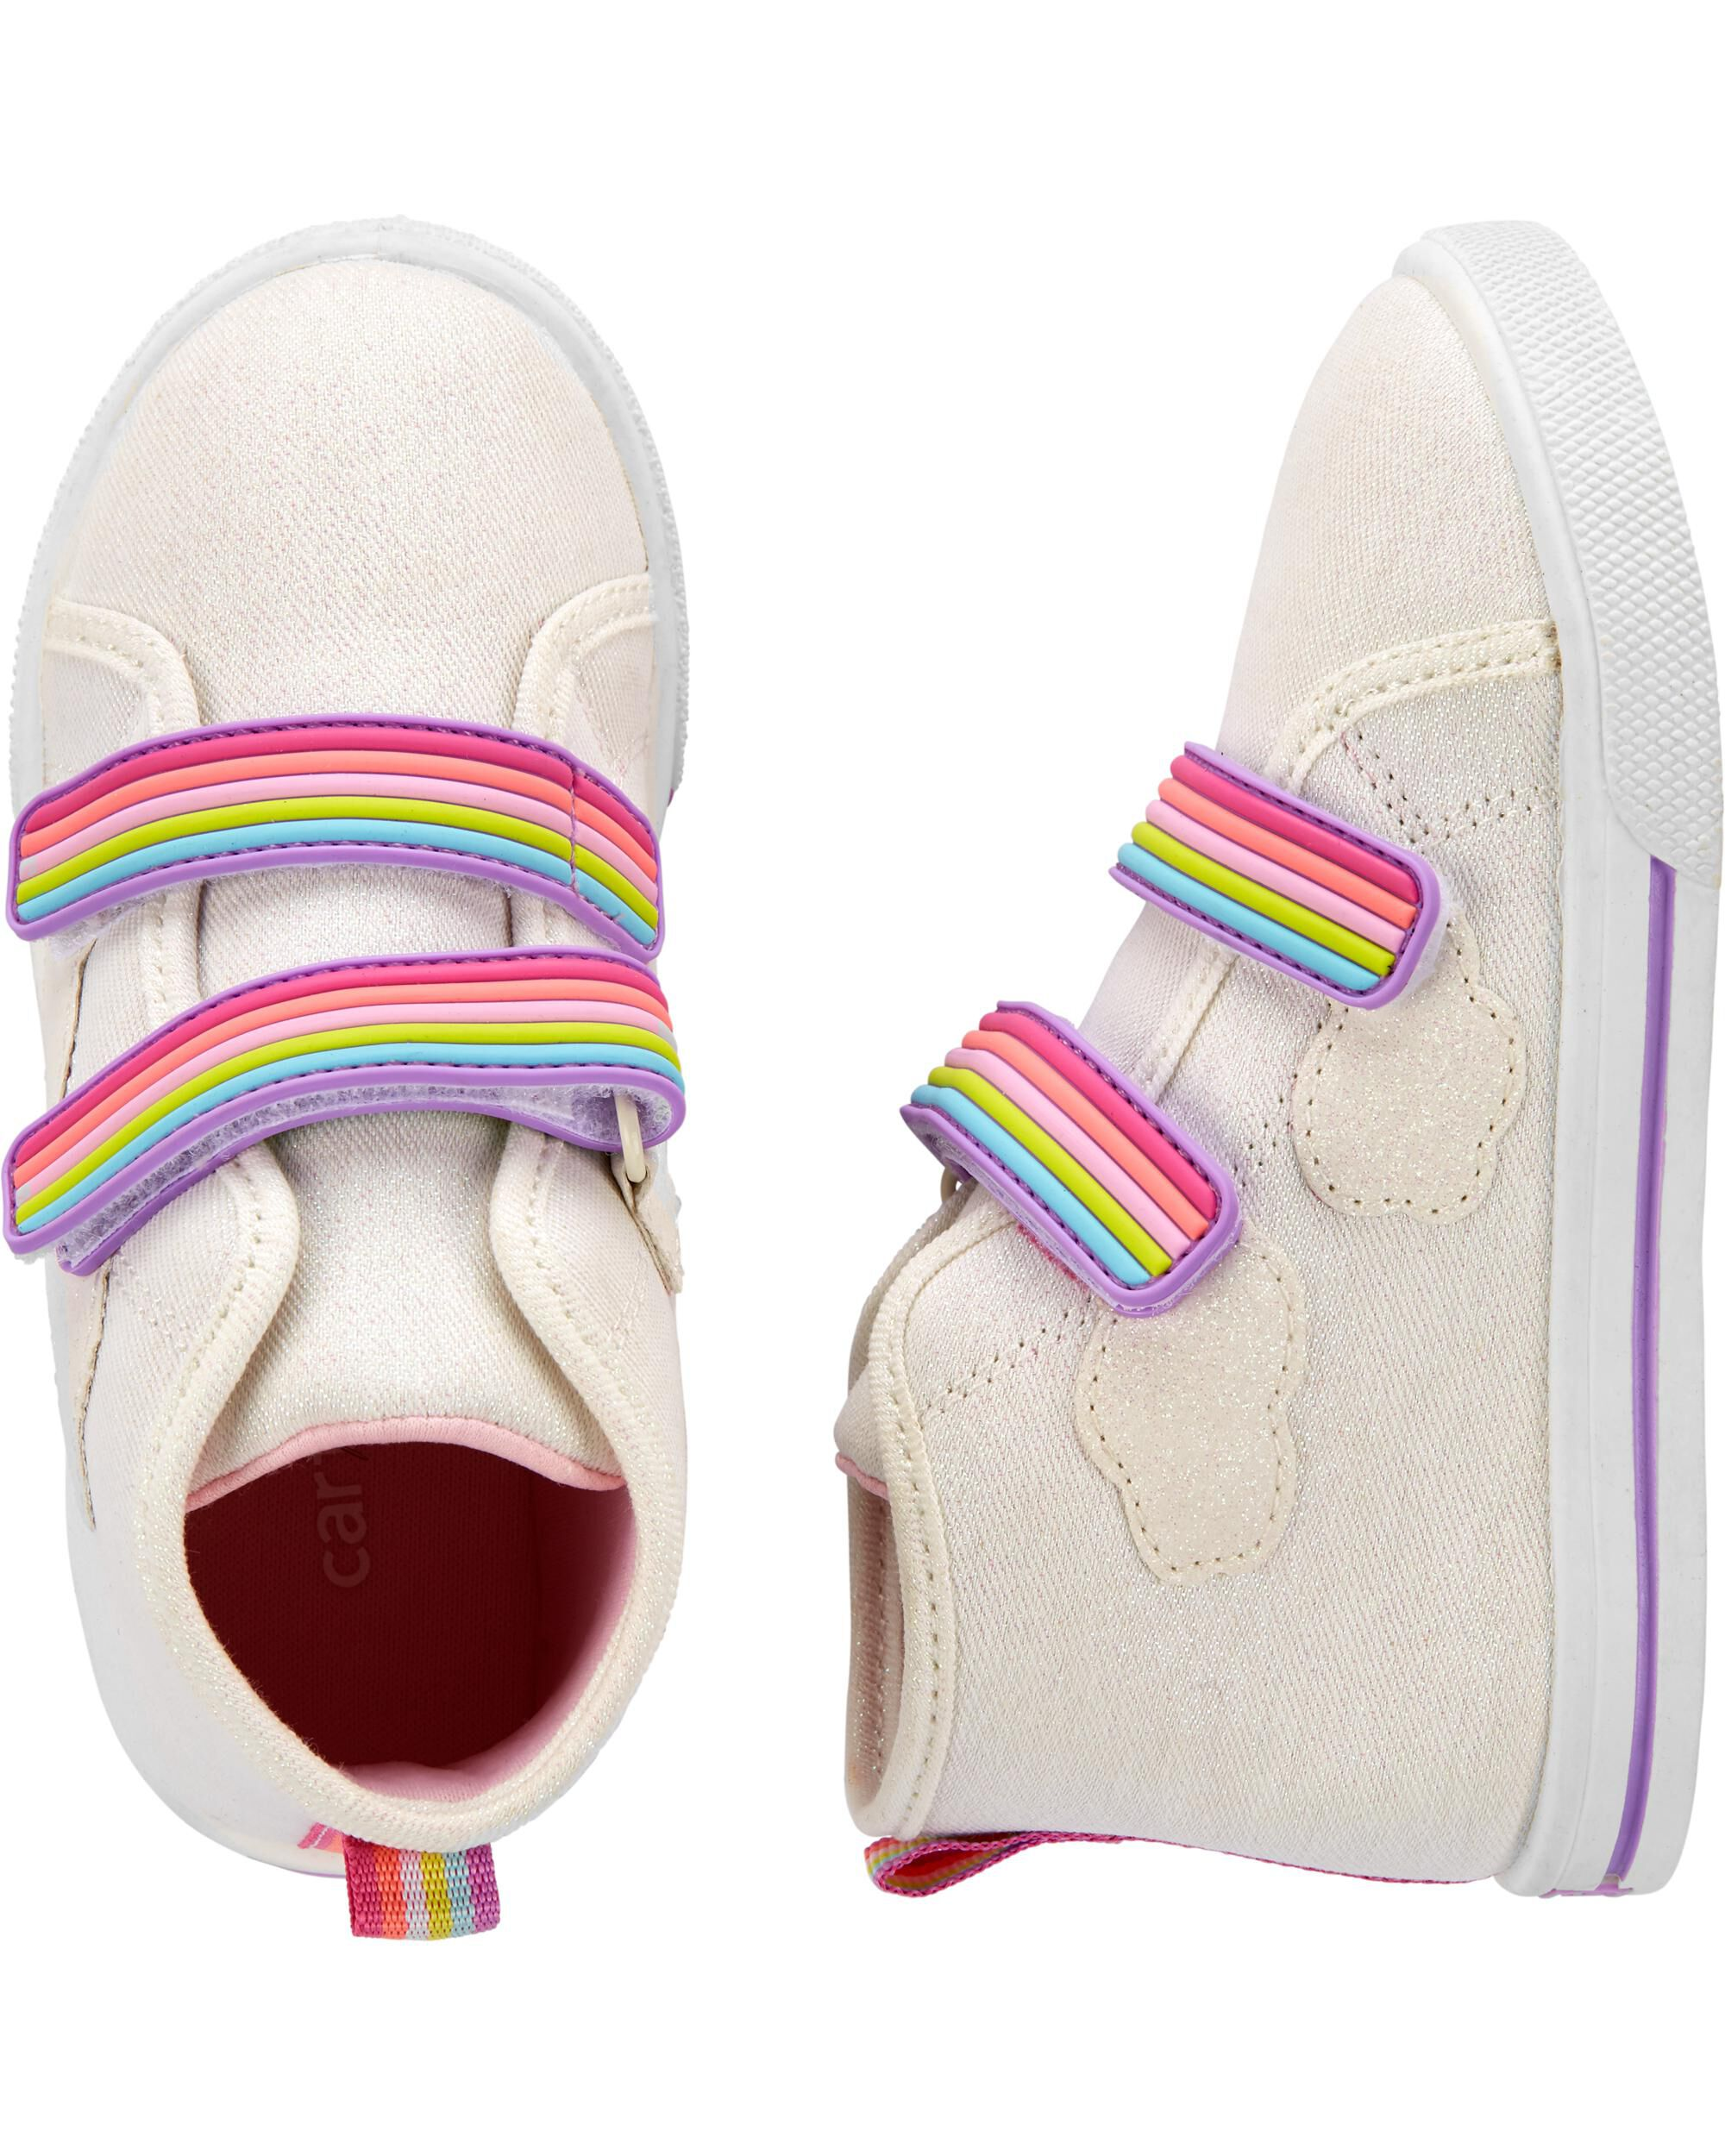 Carter's Rainbow High Top Sneakers